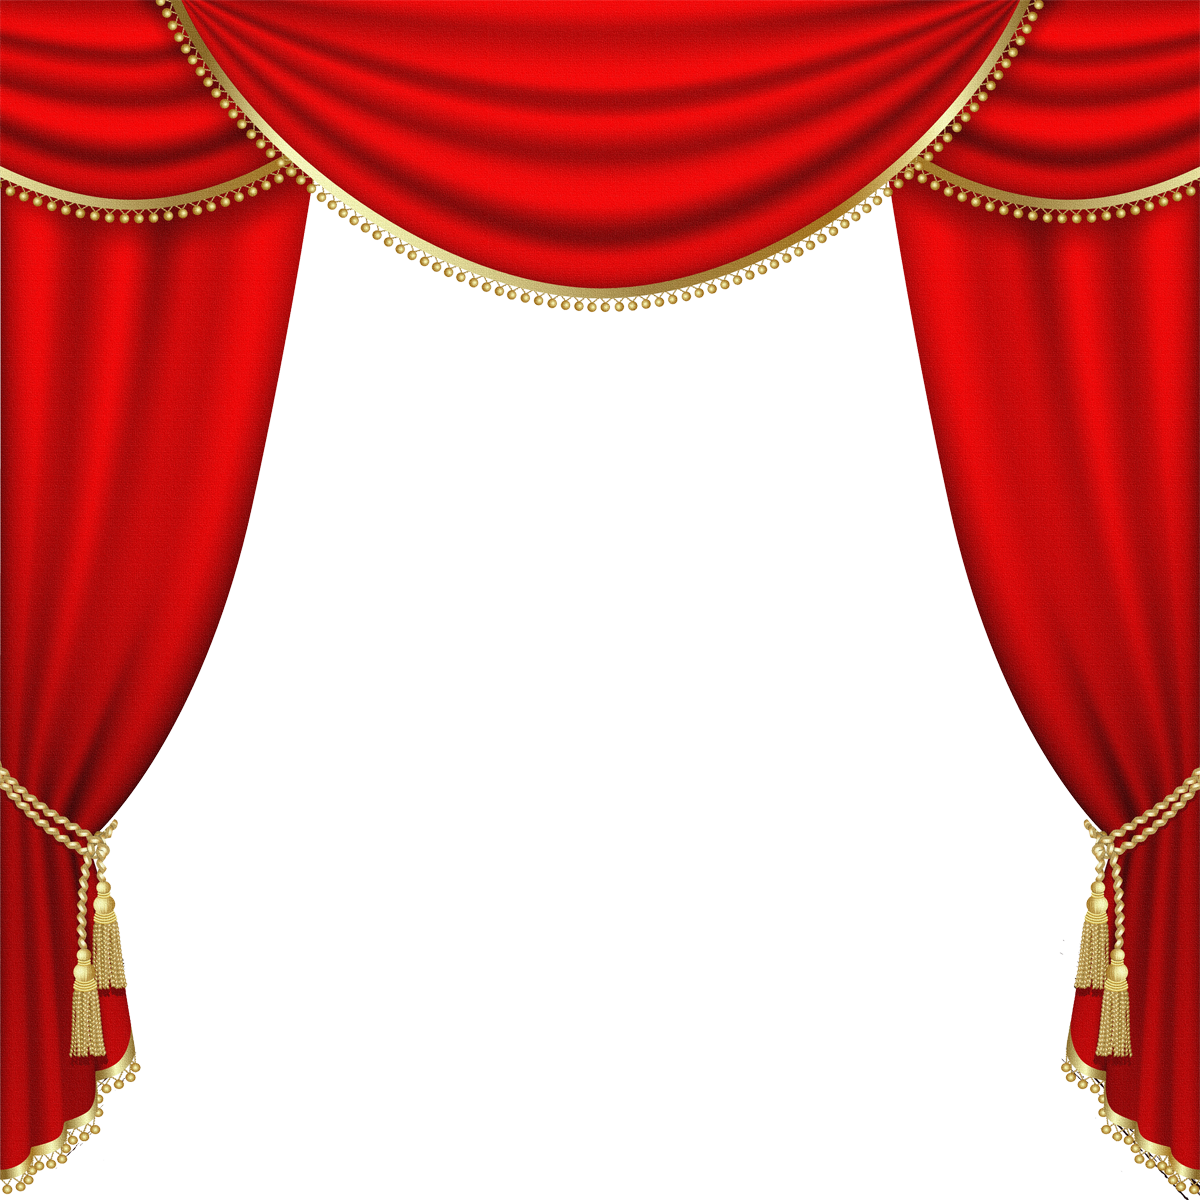 Red Theater Curtains Png Clip Art